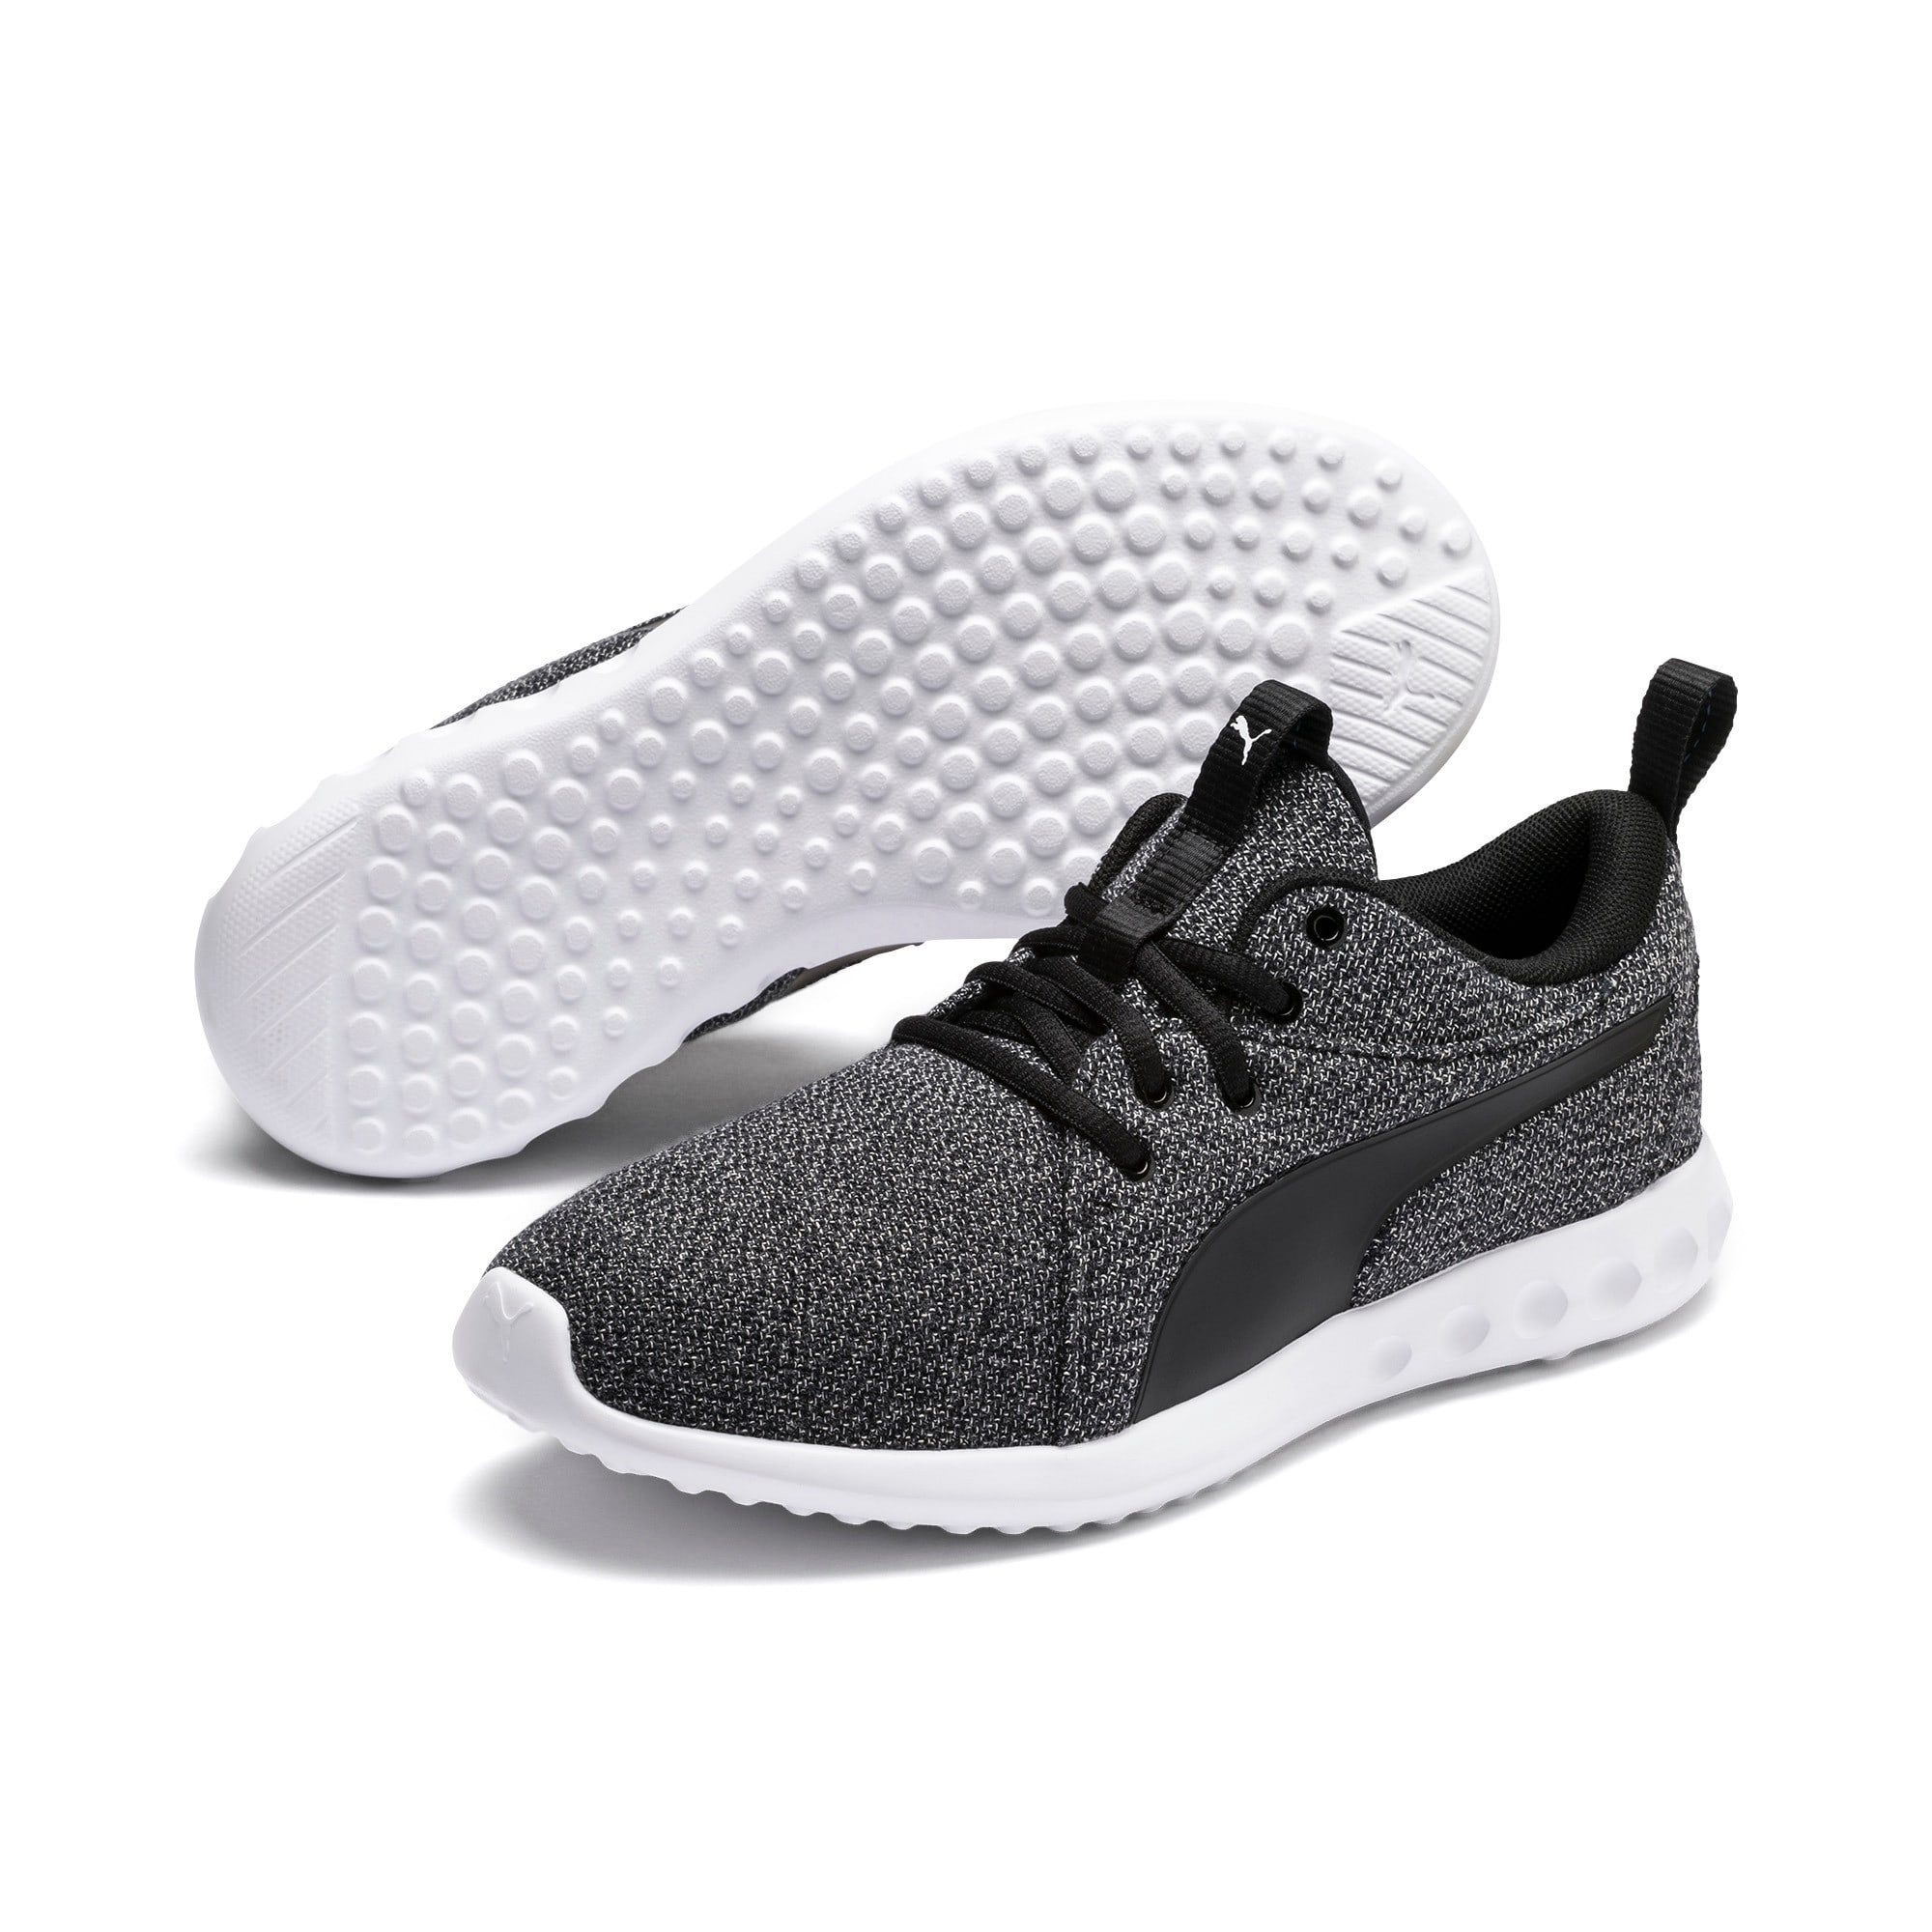 Carson 2 Knit Women's Trainers, Puma Black-Puma White, large